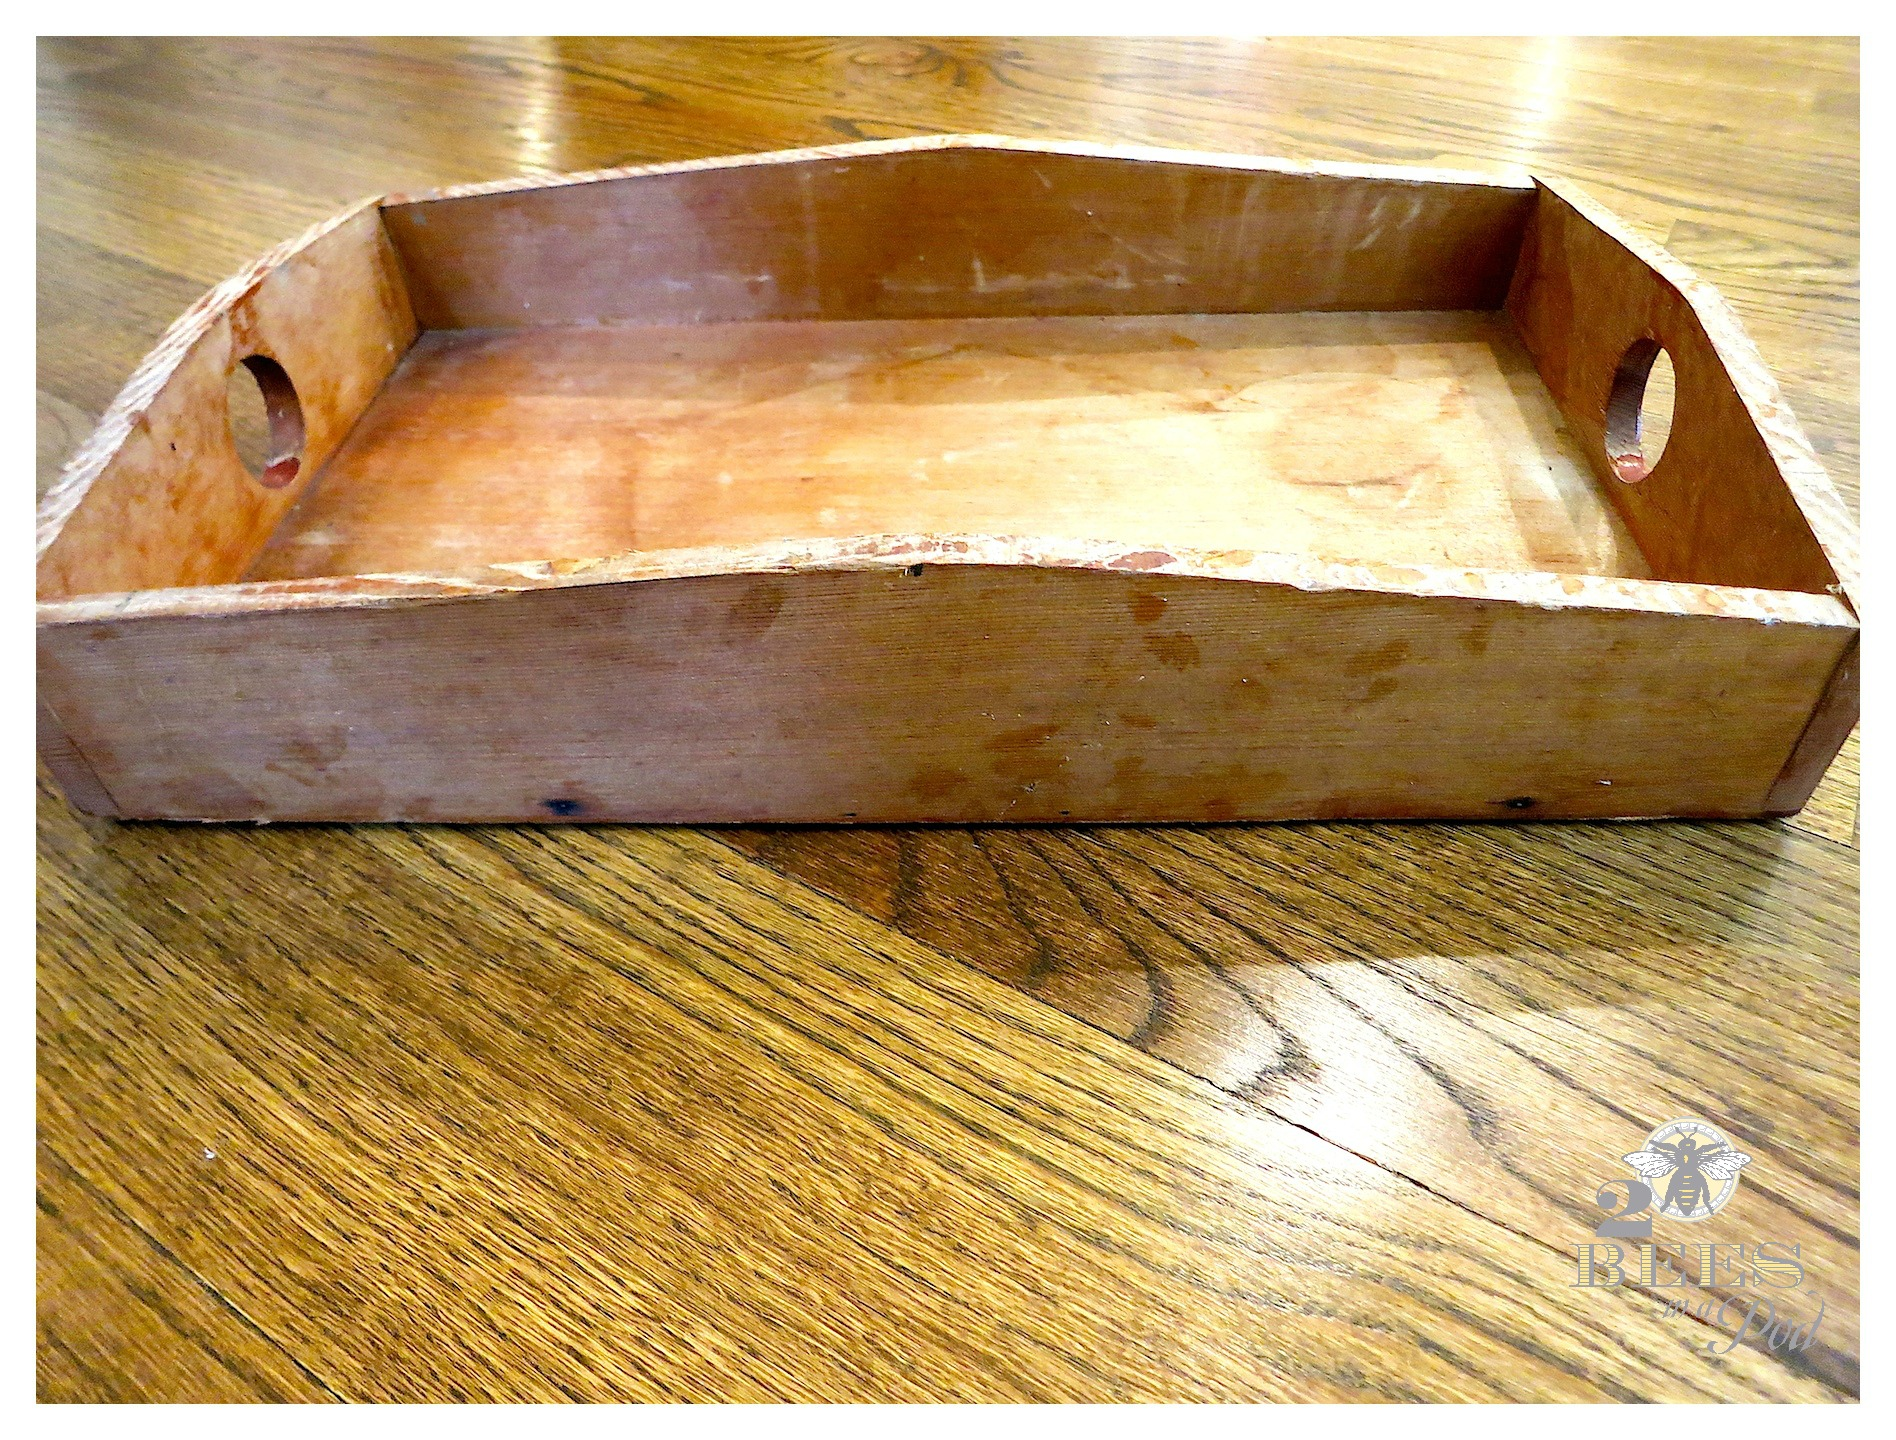 A thrift store wooden tray gets a makeover. A bit of whitewash and dark wax make it look beautiful!